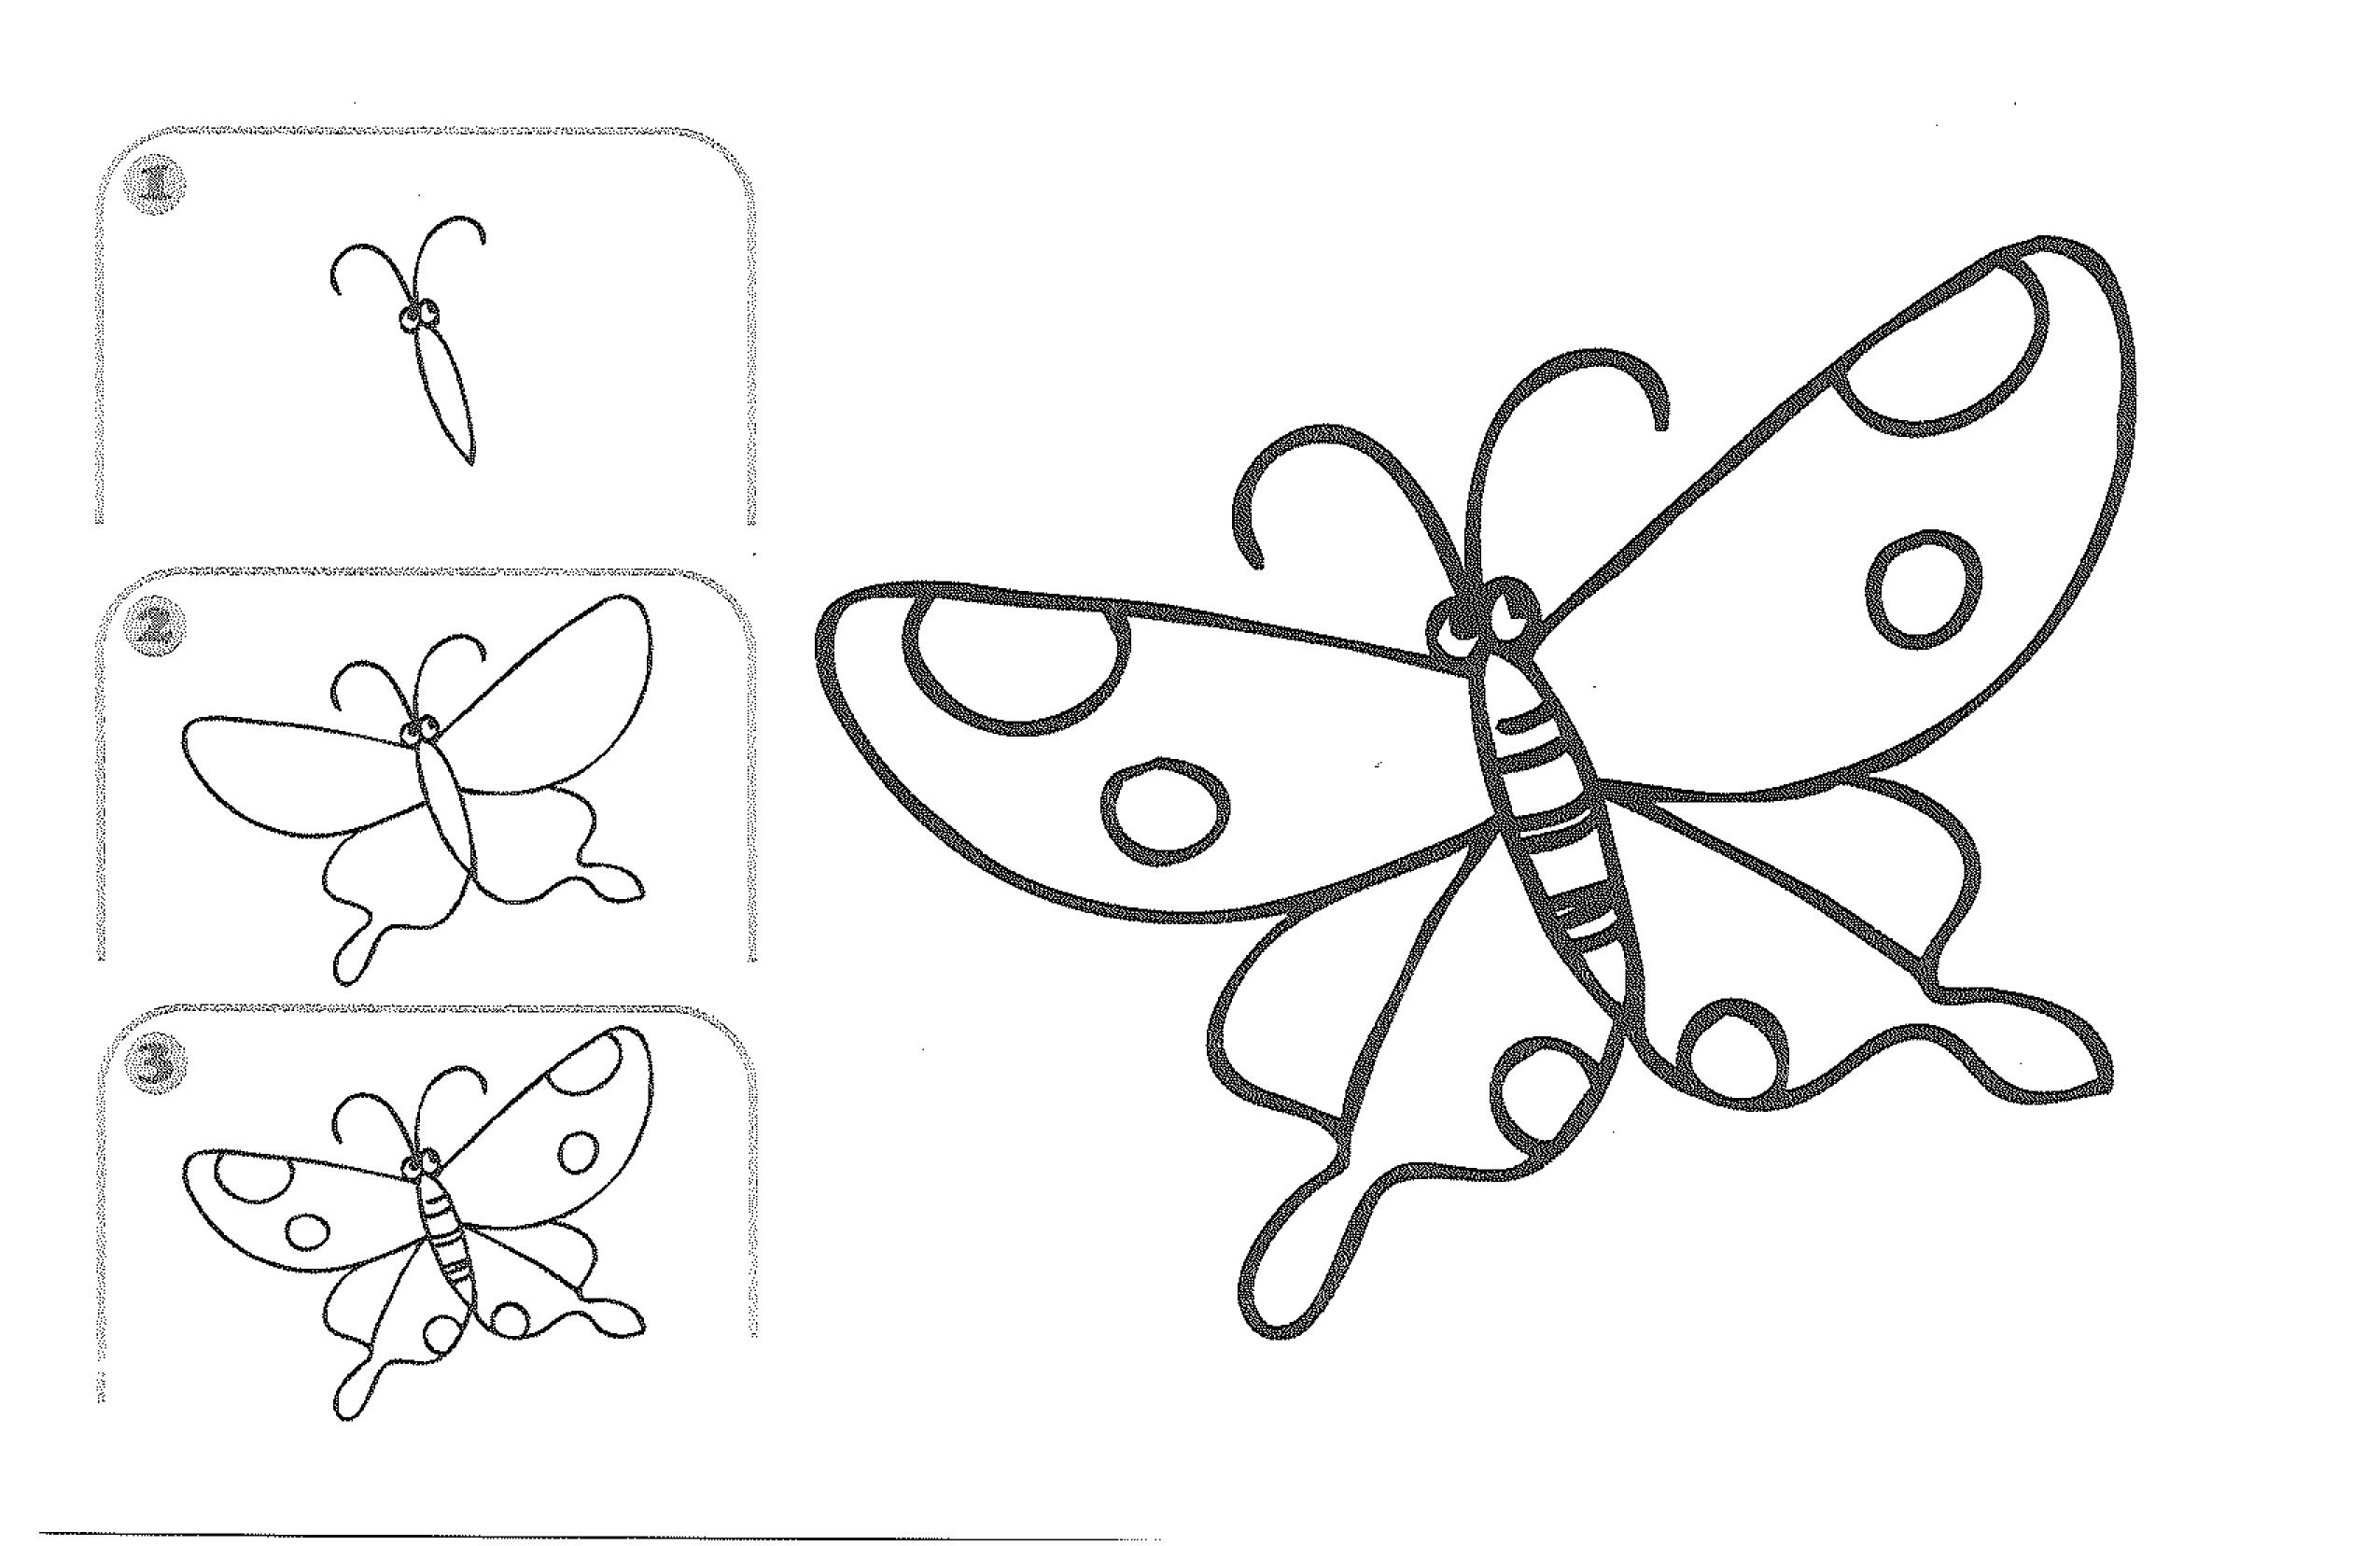 drawings by kids kids learn to draw insects teaching kids drawing free printable - Drawing For Children To Colour